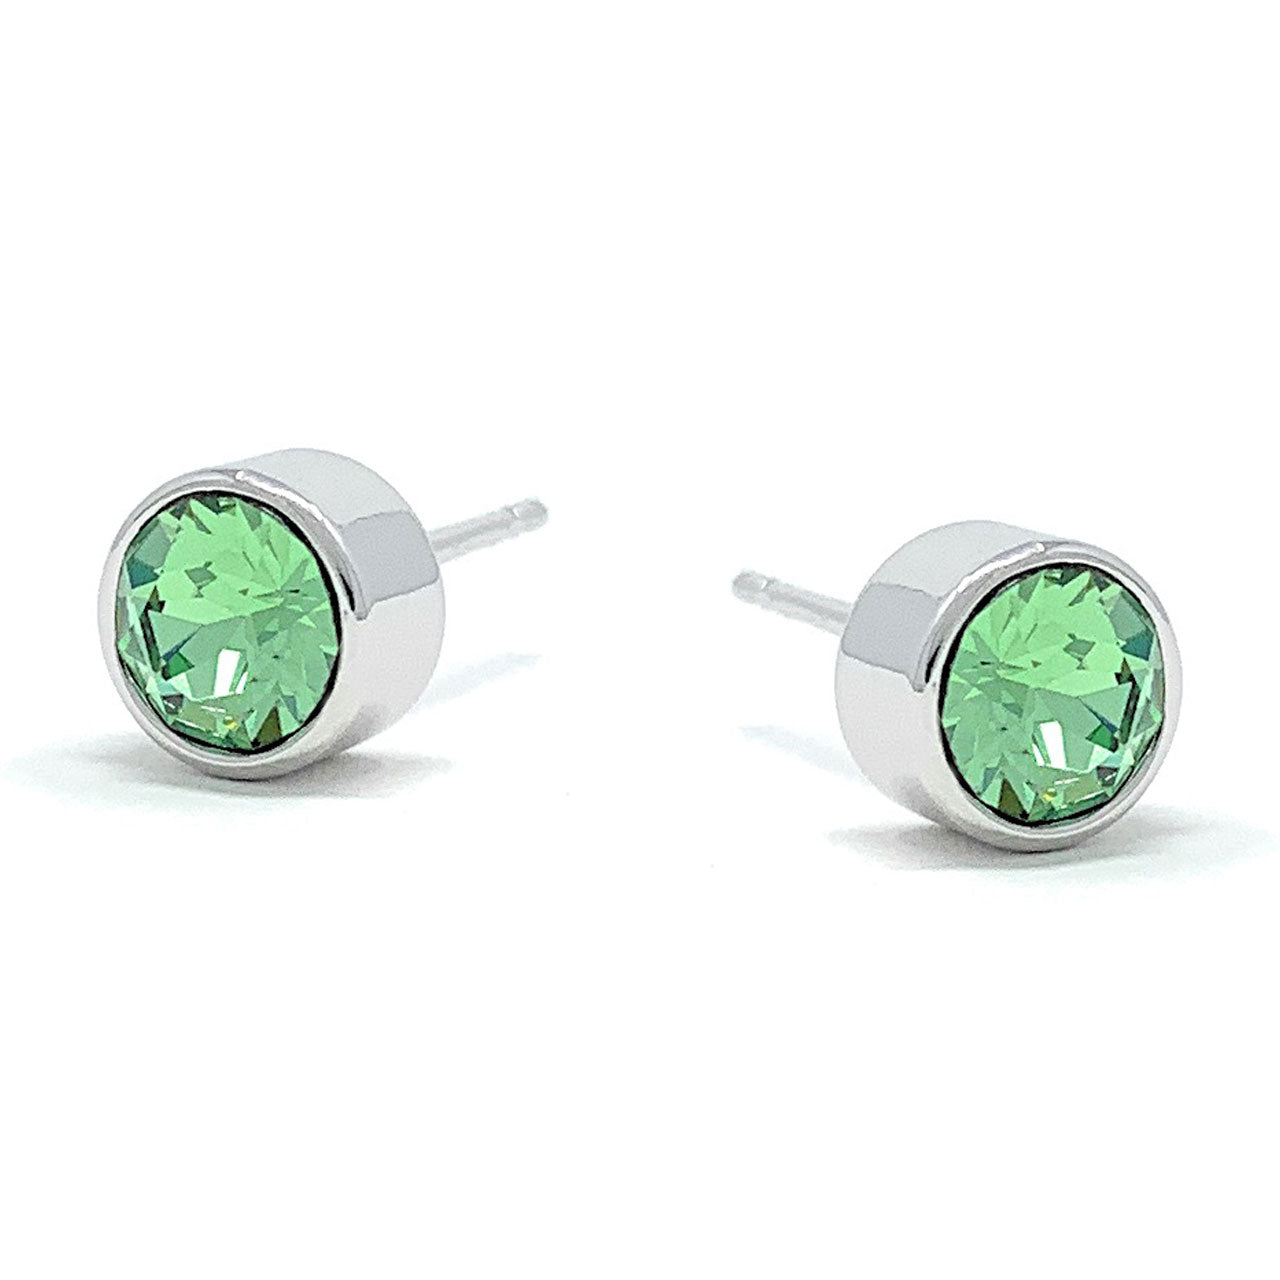 Harley Small Stud Earrings with Green Peridot Round Crystals from Swarovski Silver Toned Rhodium Plated - Ed Heart